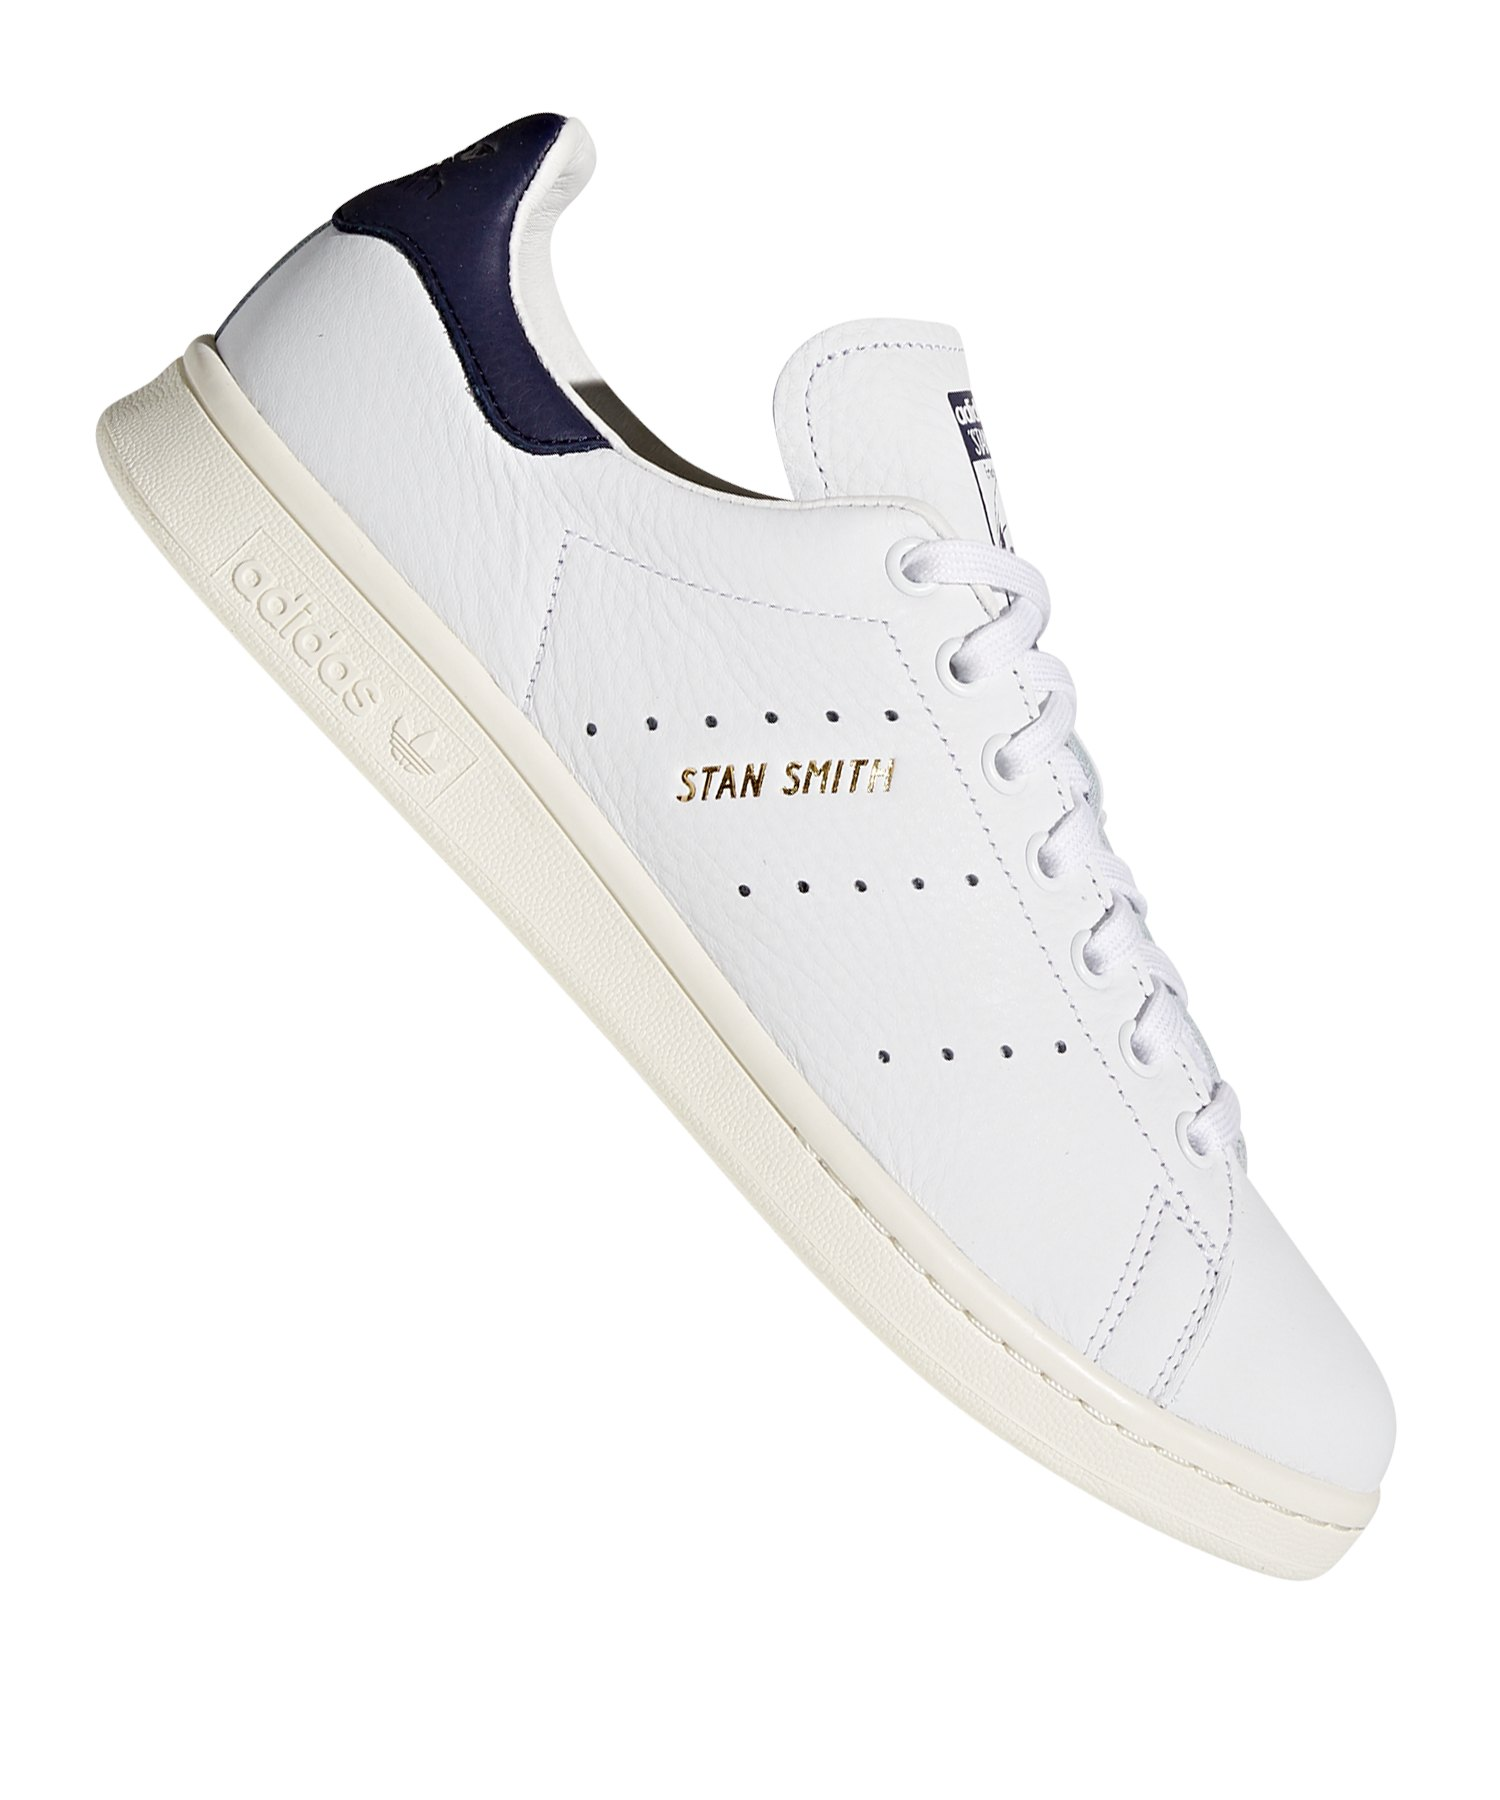 Herbst Winter Kollektion Adidas Originals Stan Smith